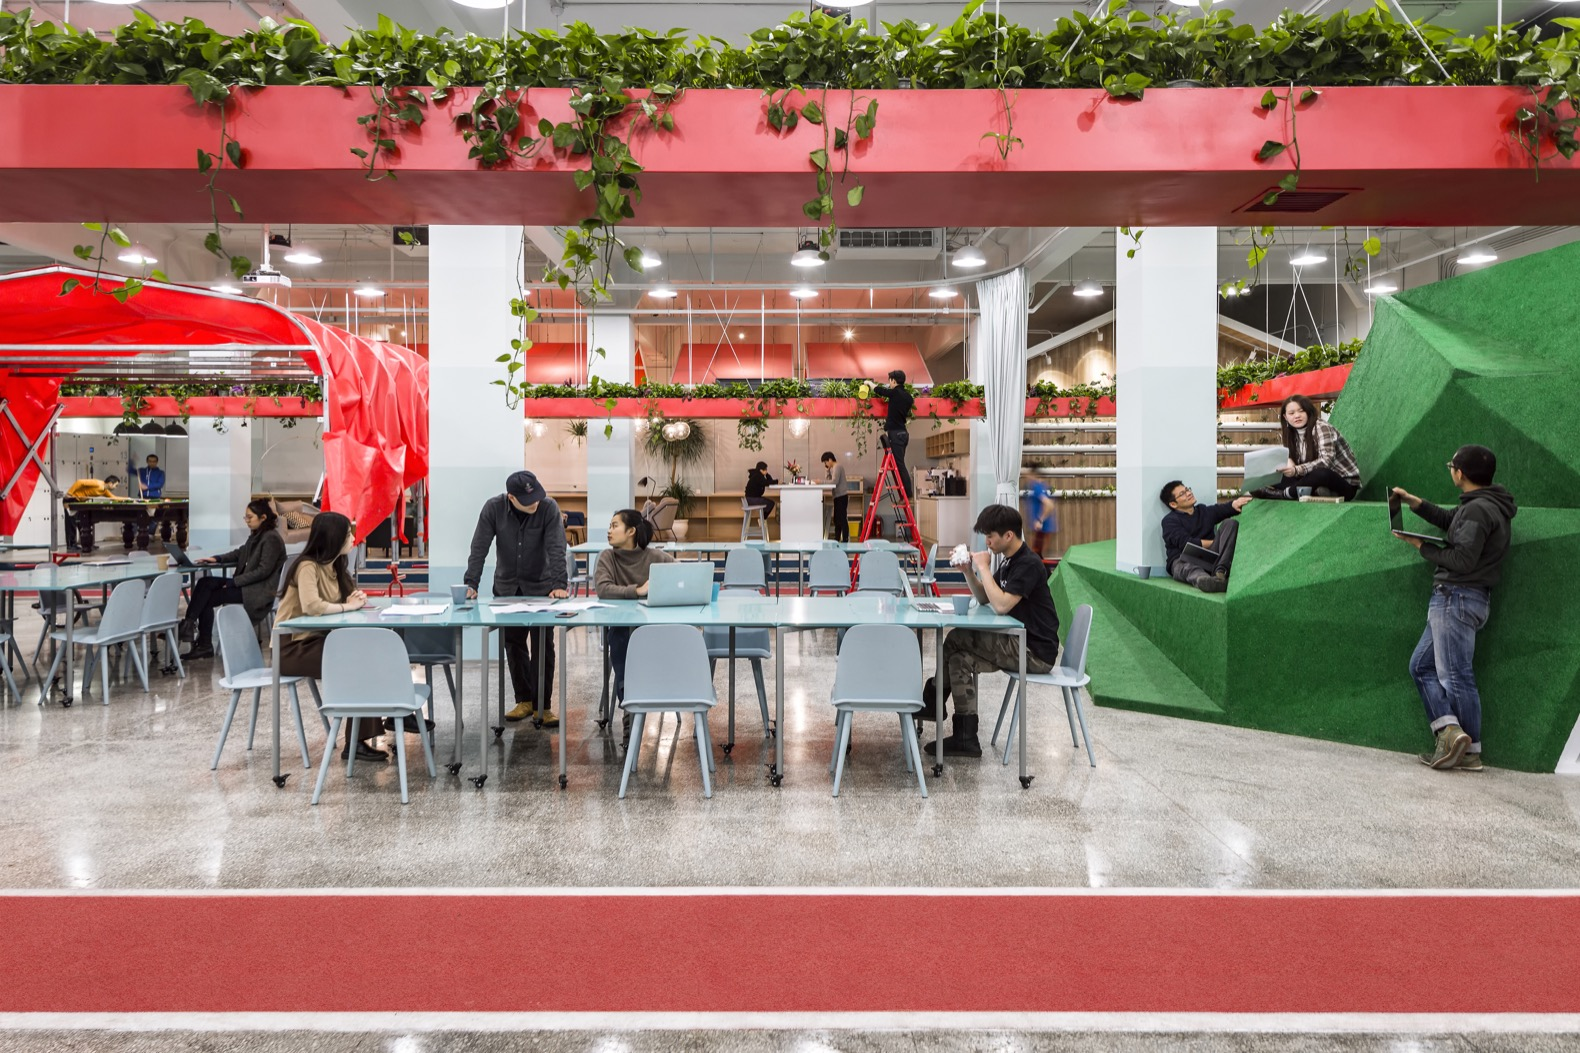 """Hydroponic gardens and a """"mini mountain"""" promote fun and well-being in this creative office"""